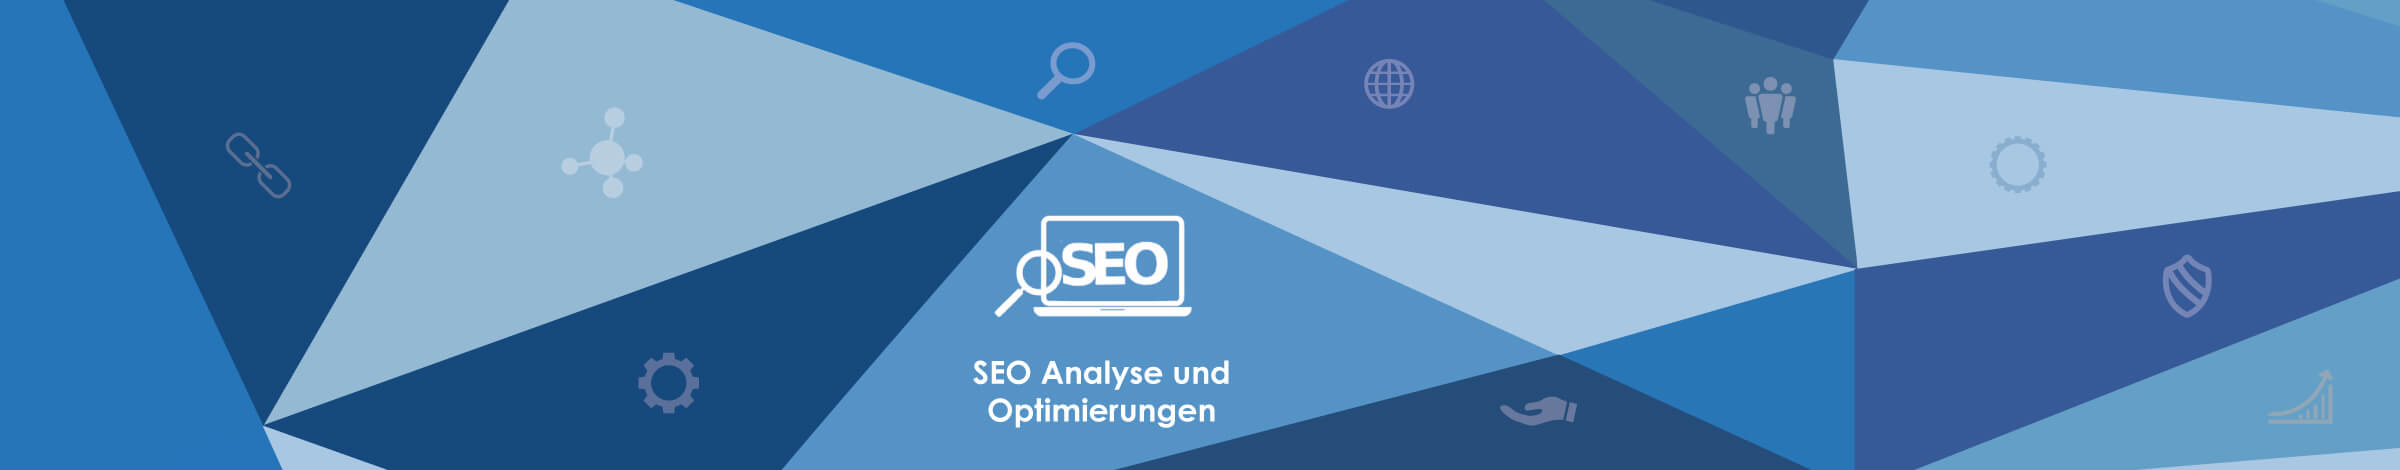 web_updates_kmu_wuk-ch_SEO-Analyse-Optimierungen